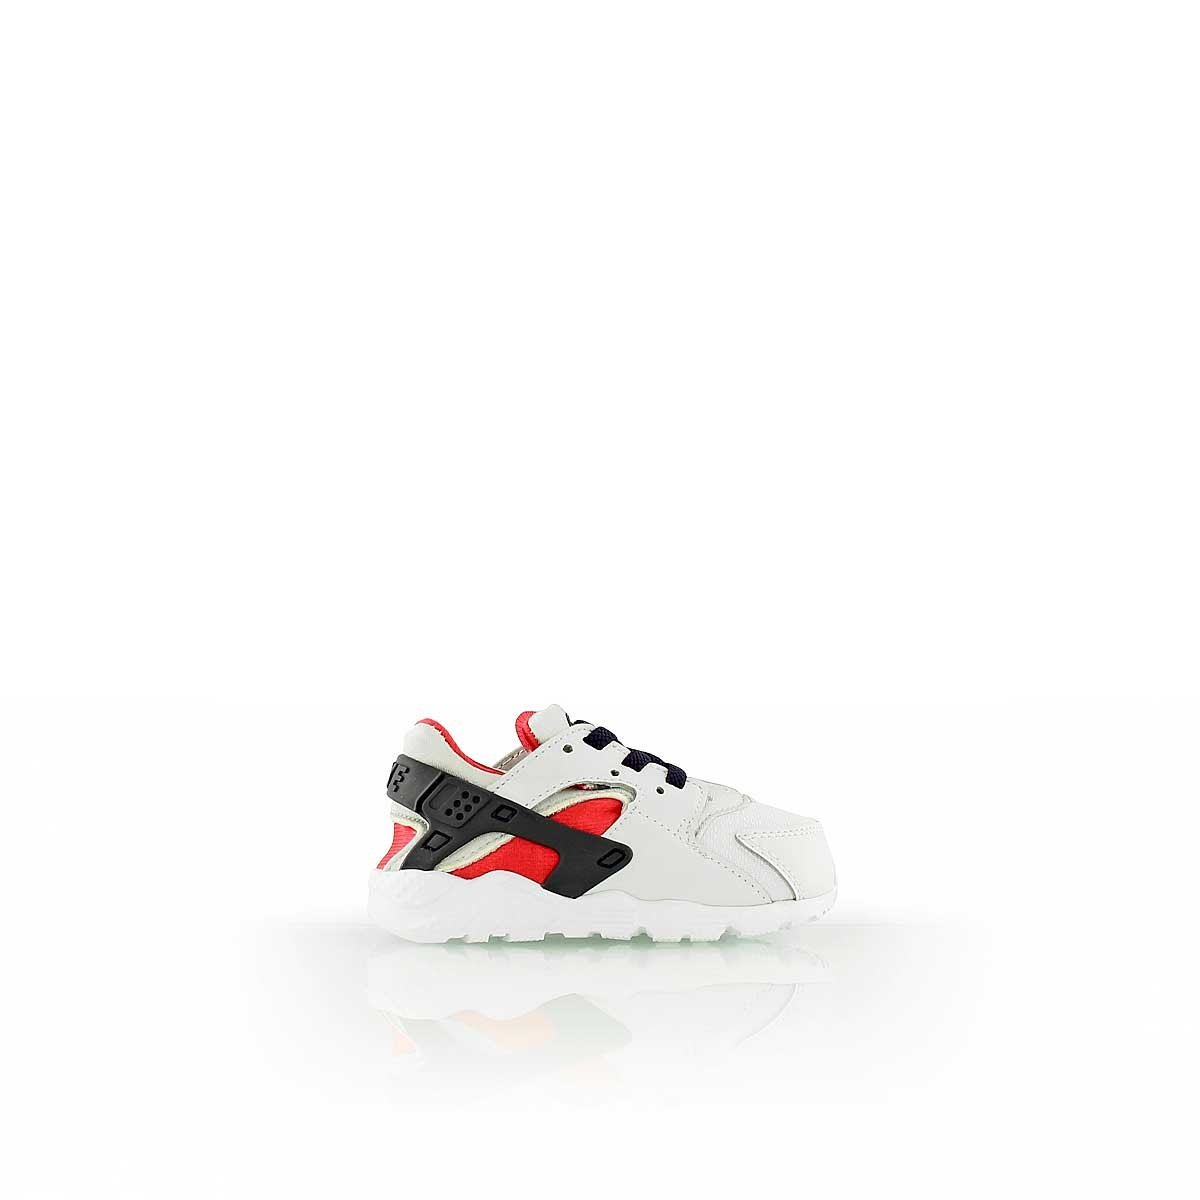 buy popular 7c7f8 a4fc8 ... Scarpe-baby-NIKE-Huarache-Run-White-pelle-bianco-